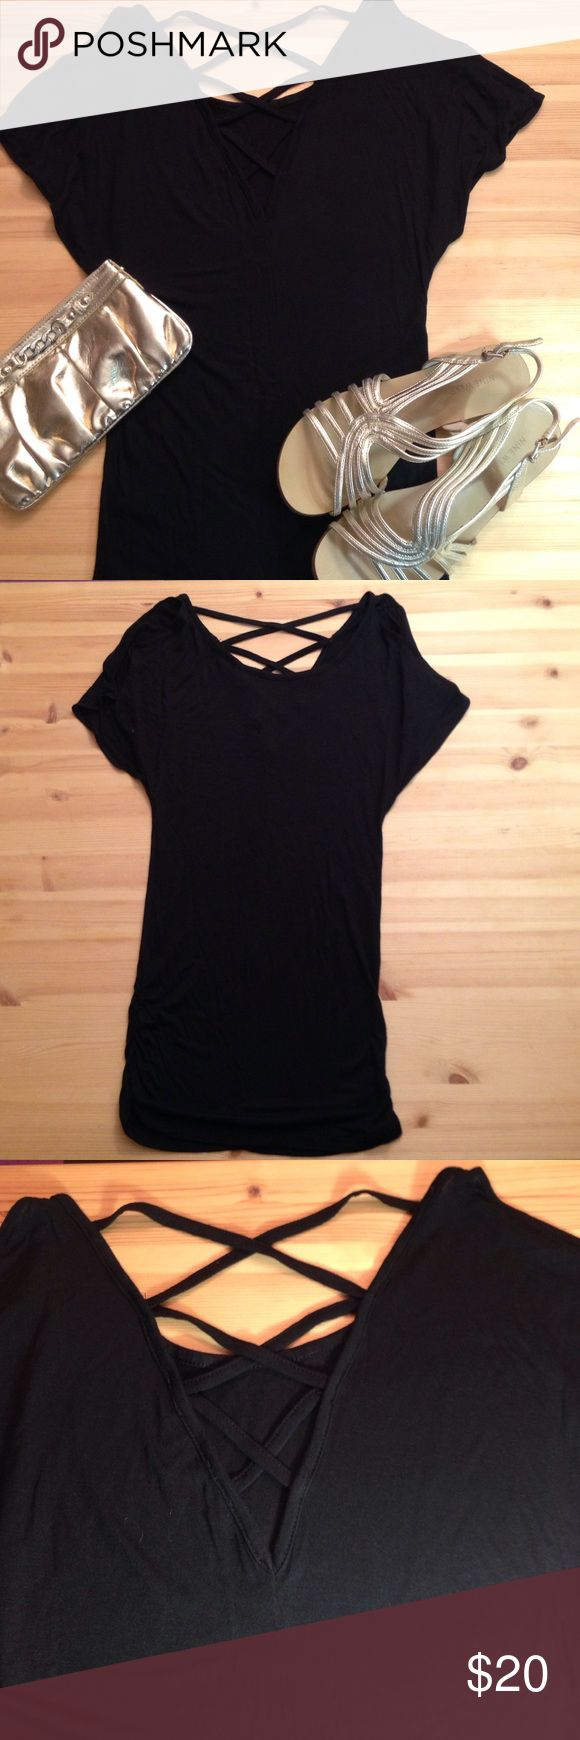 Express Long Shirt Express Long Shirt - Black - Never Worn - has slits in sleeves and cross-cross strapped back - This extra long top is the perfect length for leggings! Express Tops Tunics